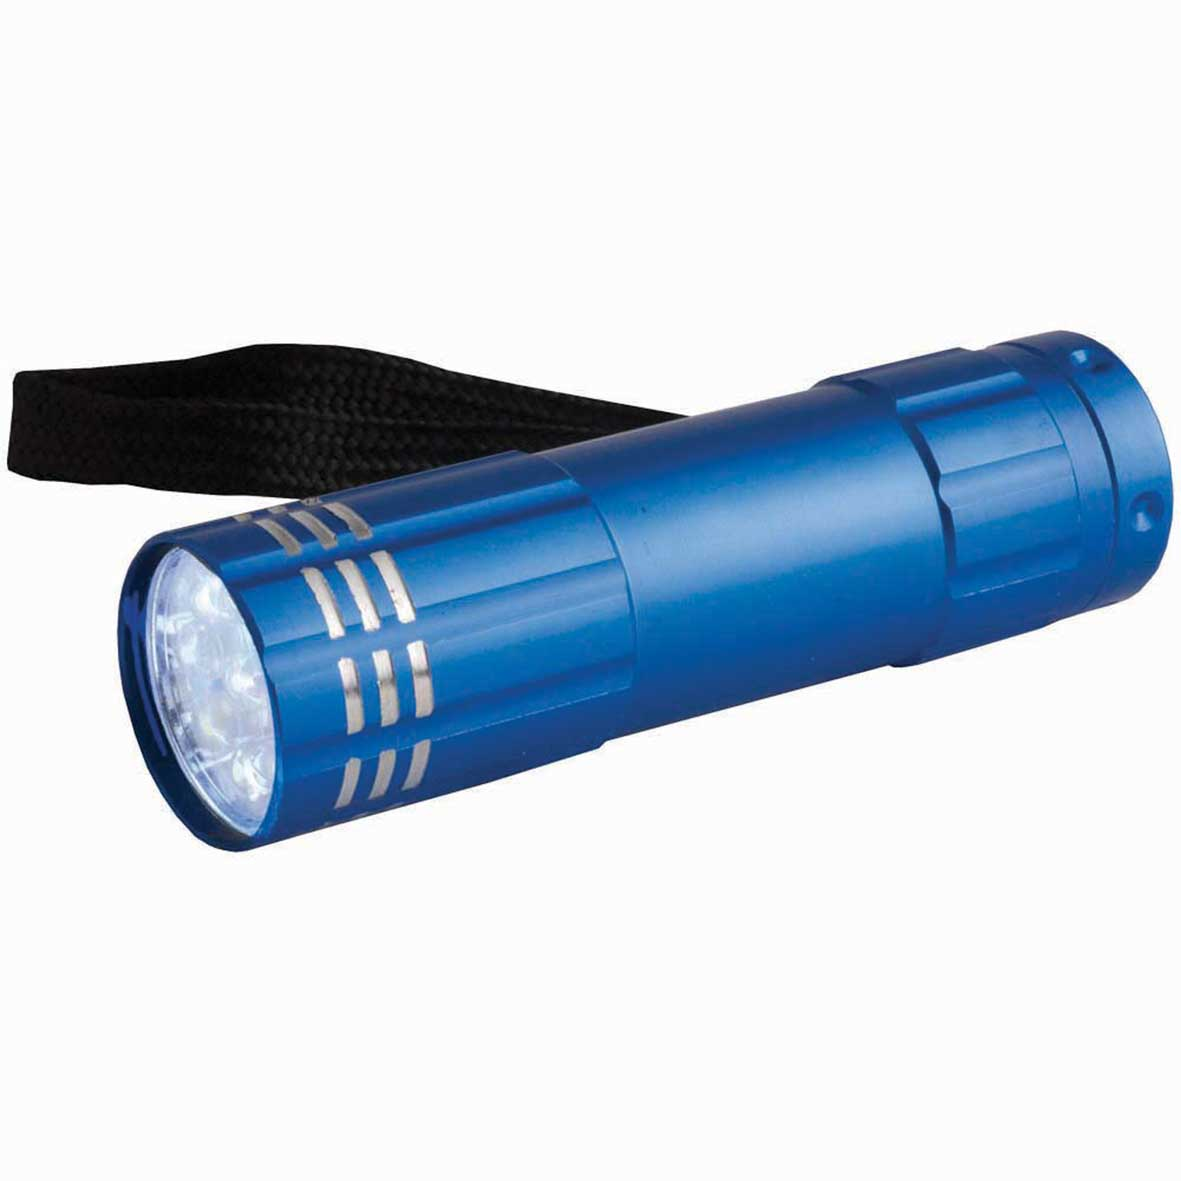 Aluminium torch with 9 LED lights - Royal Blue sip-0941210